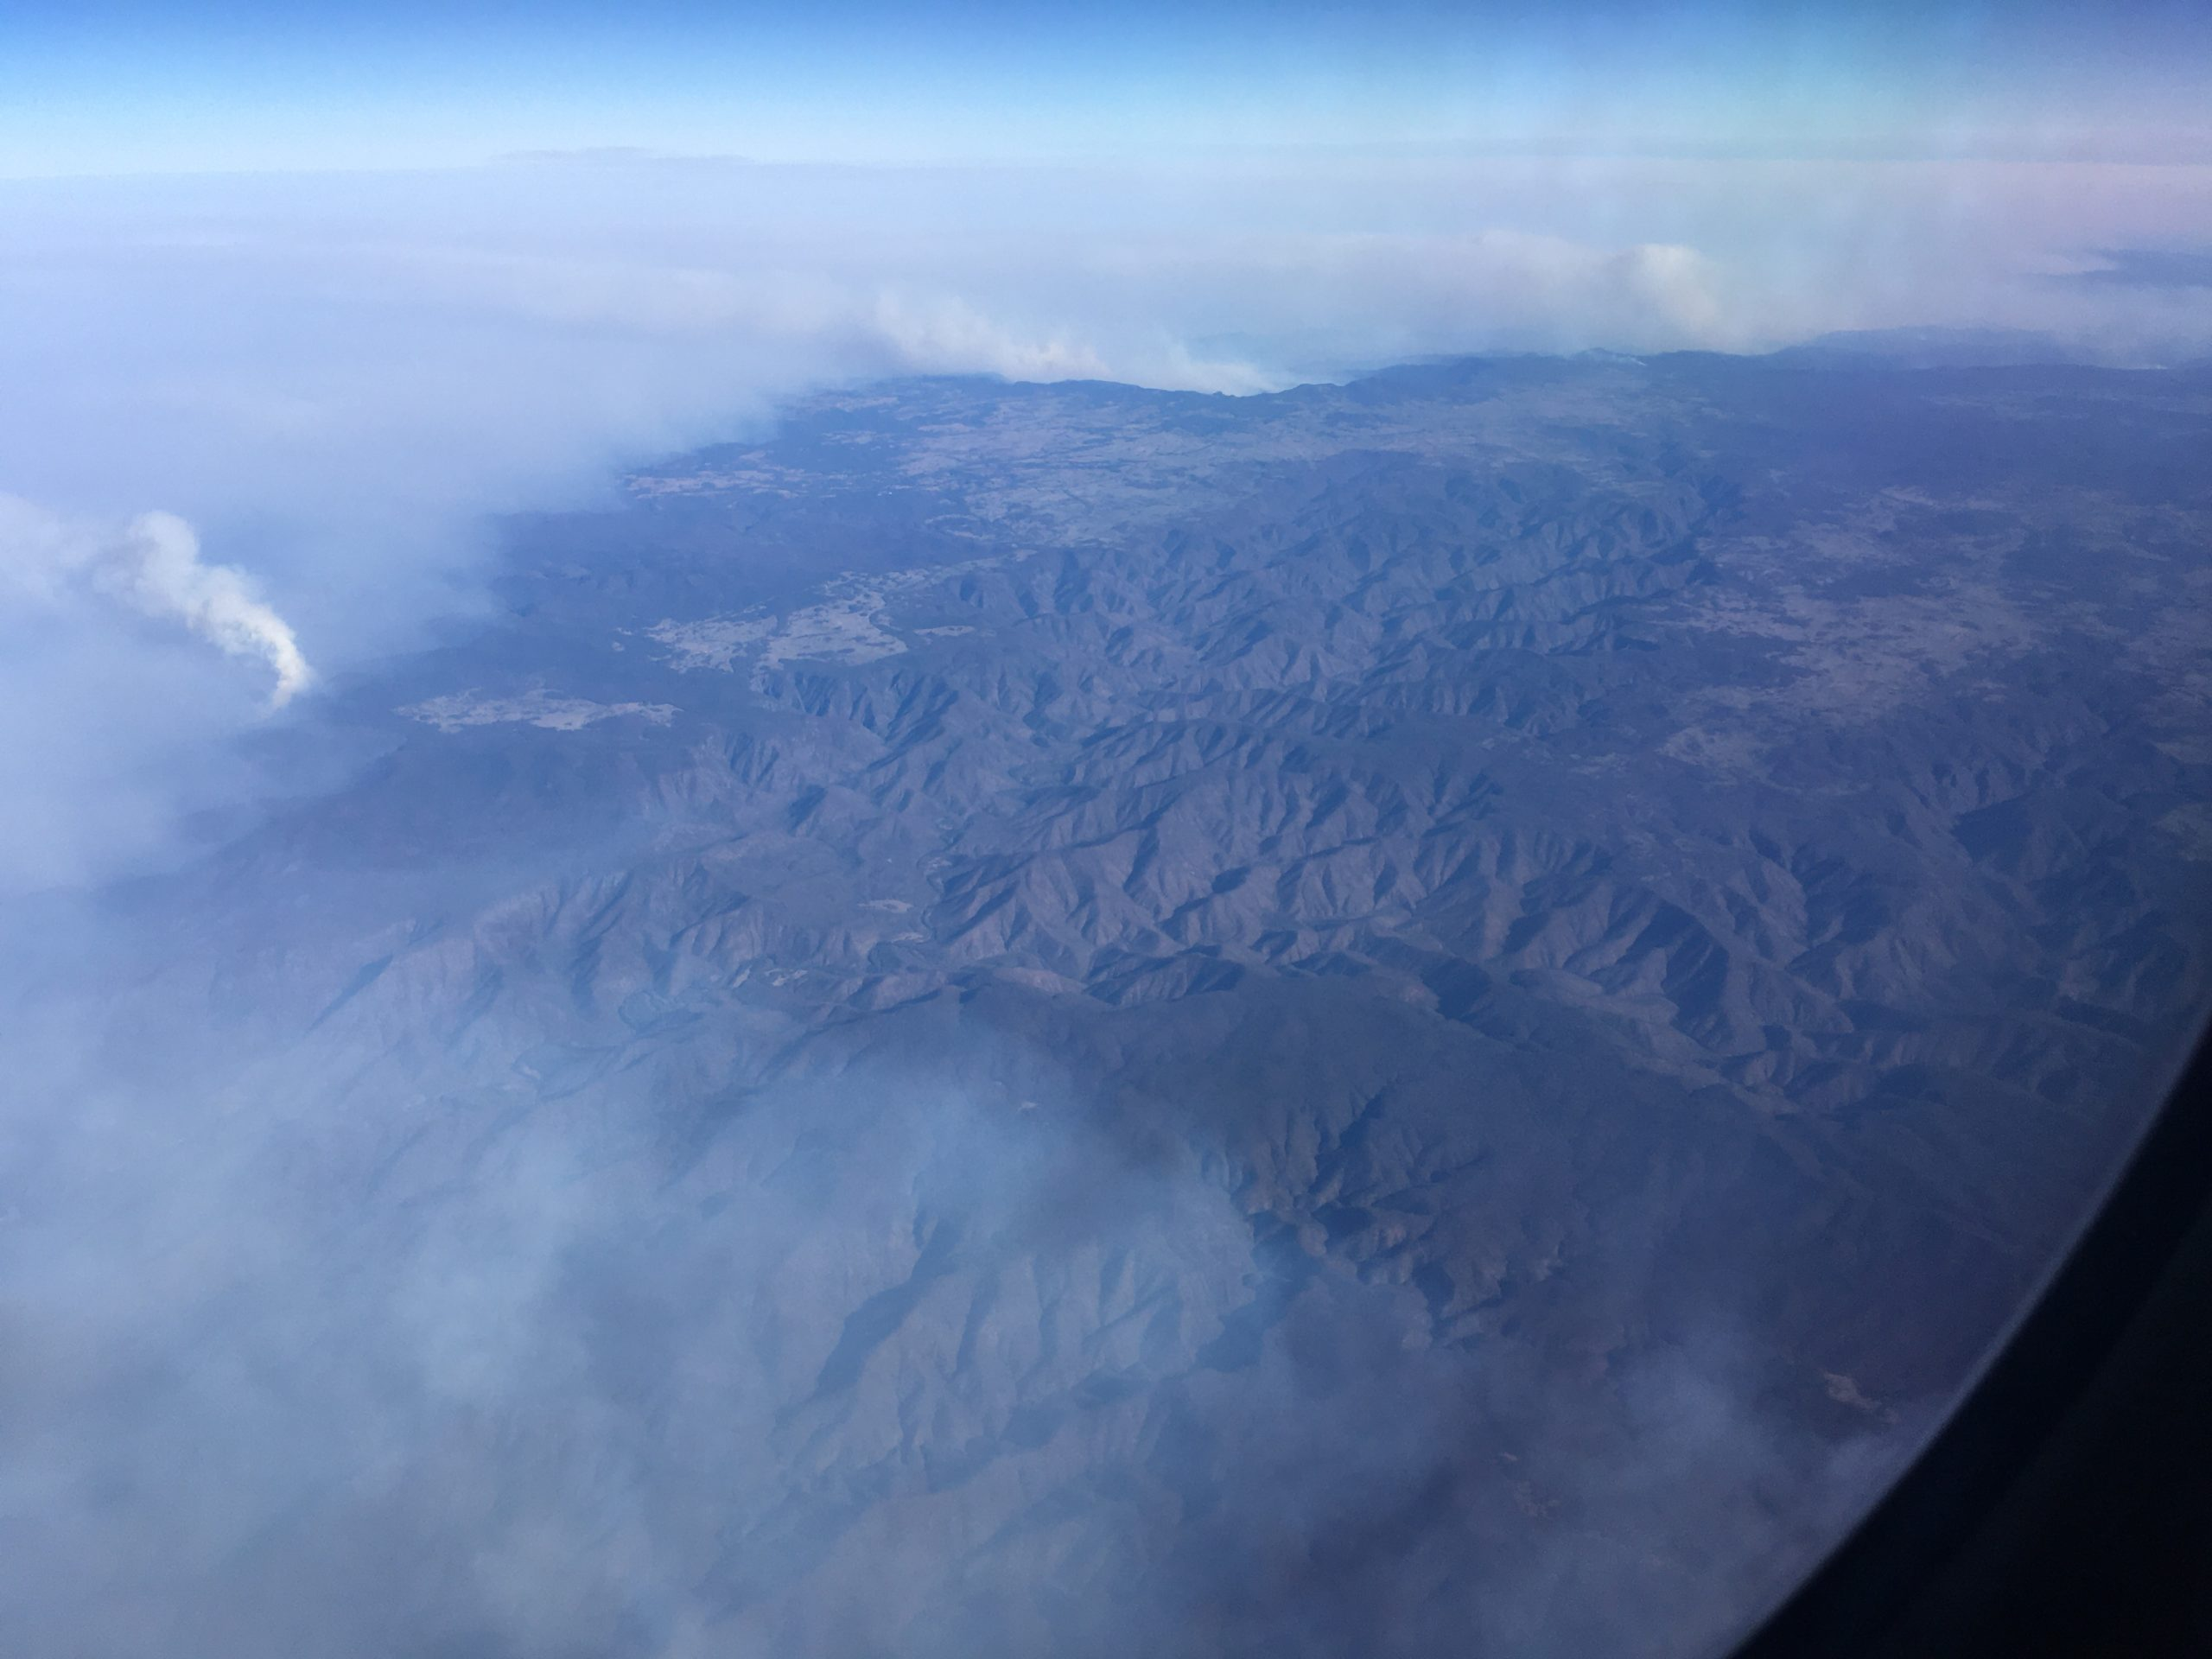 arial photo of mountainous landscape showing smoke from bushfire